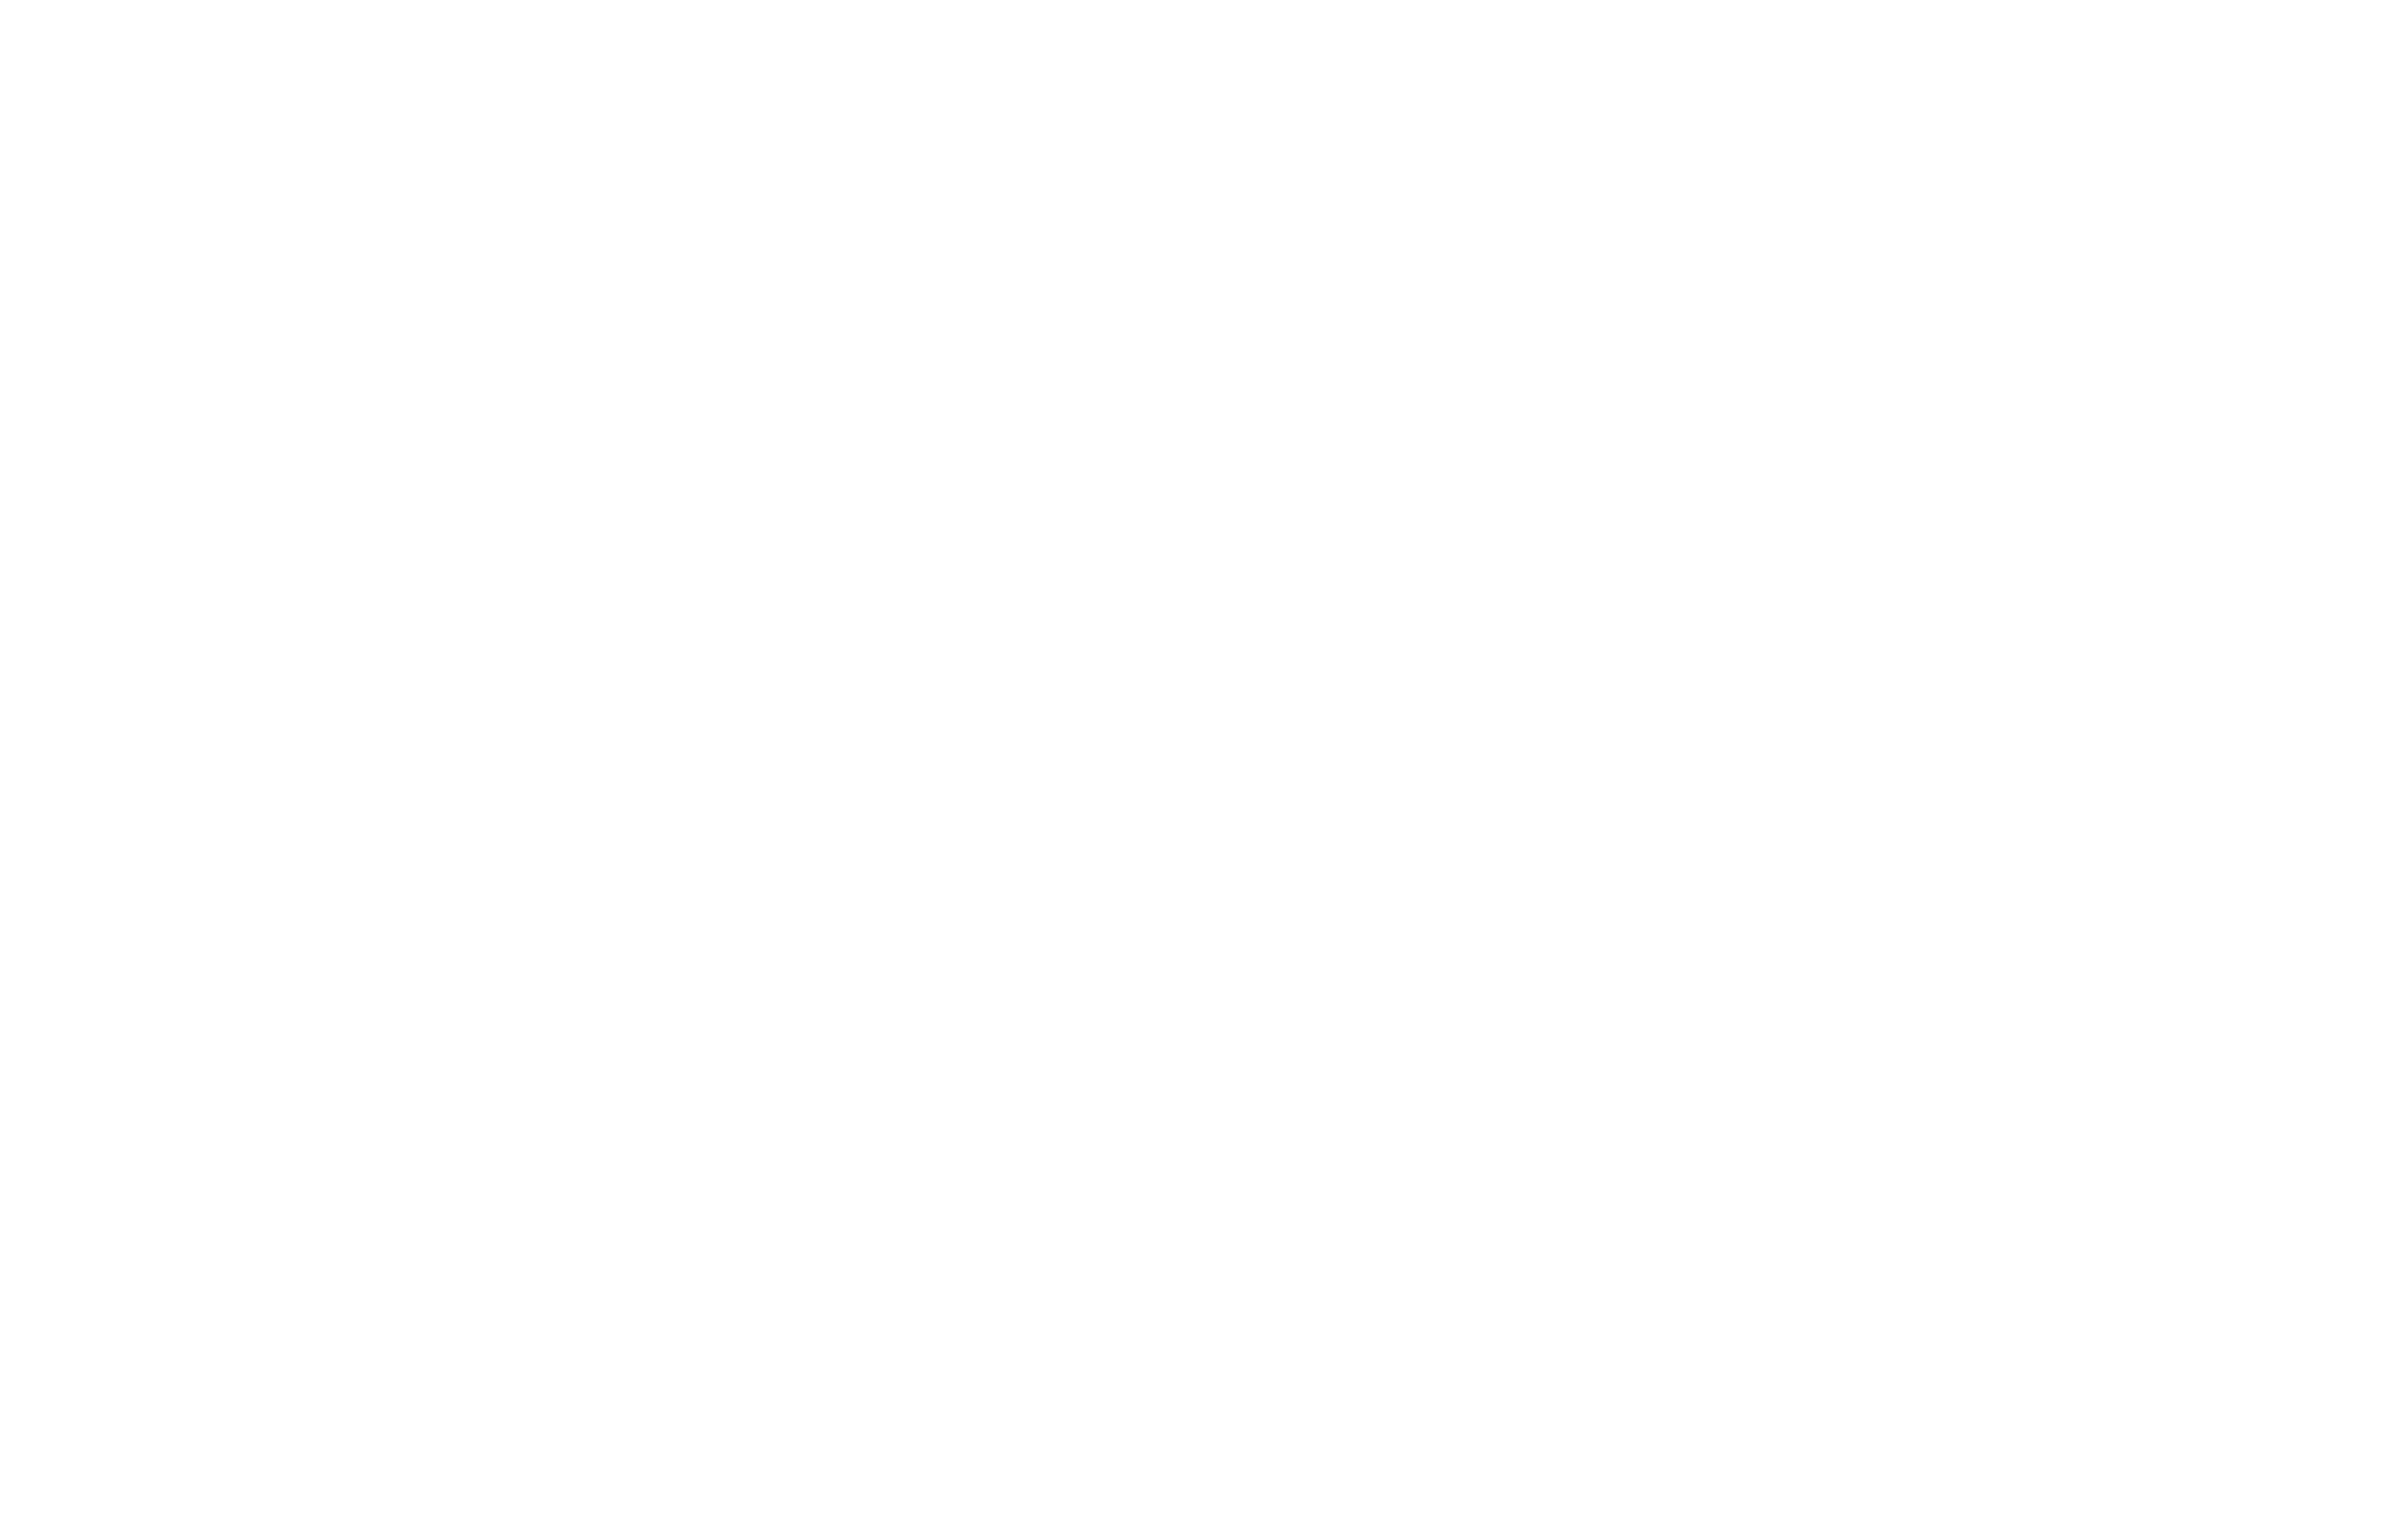 Parallel Lines Logo